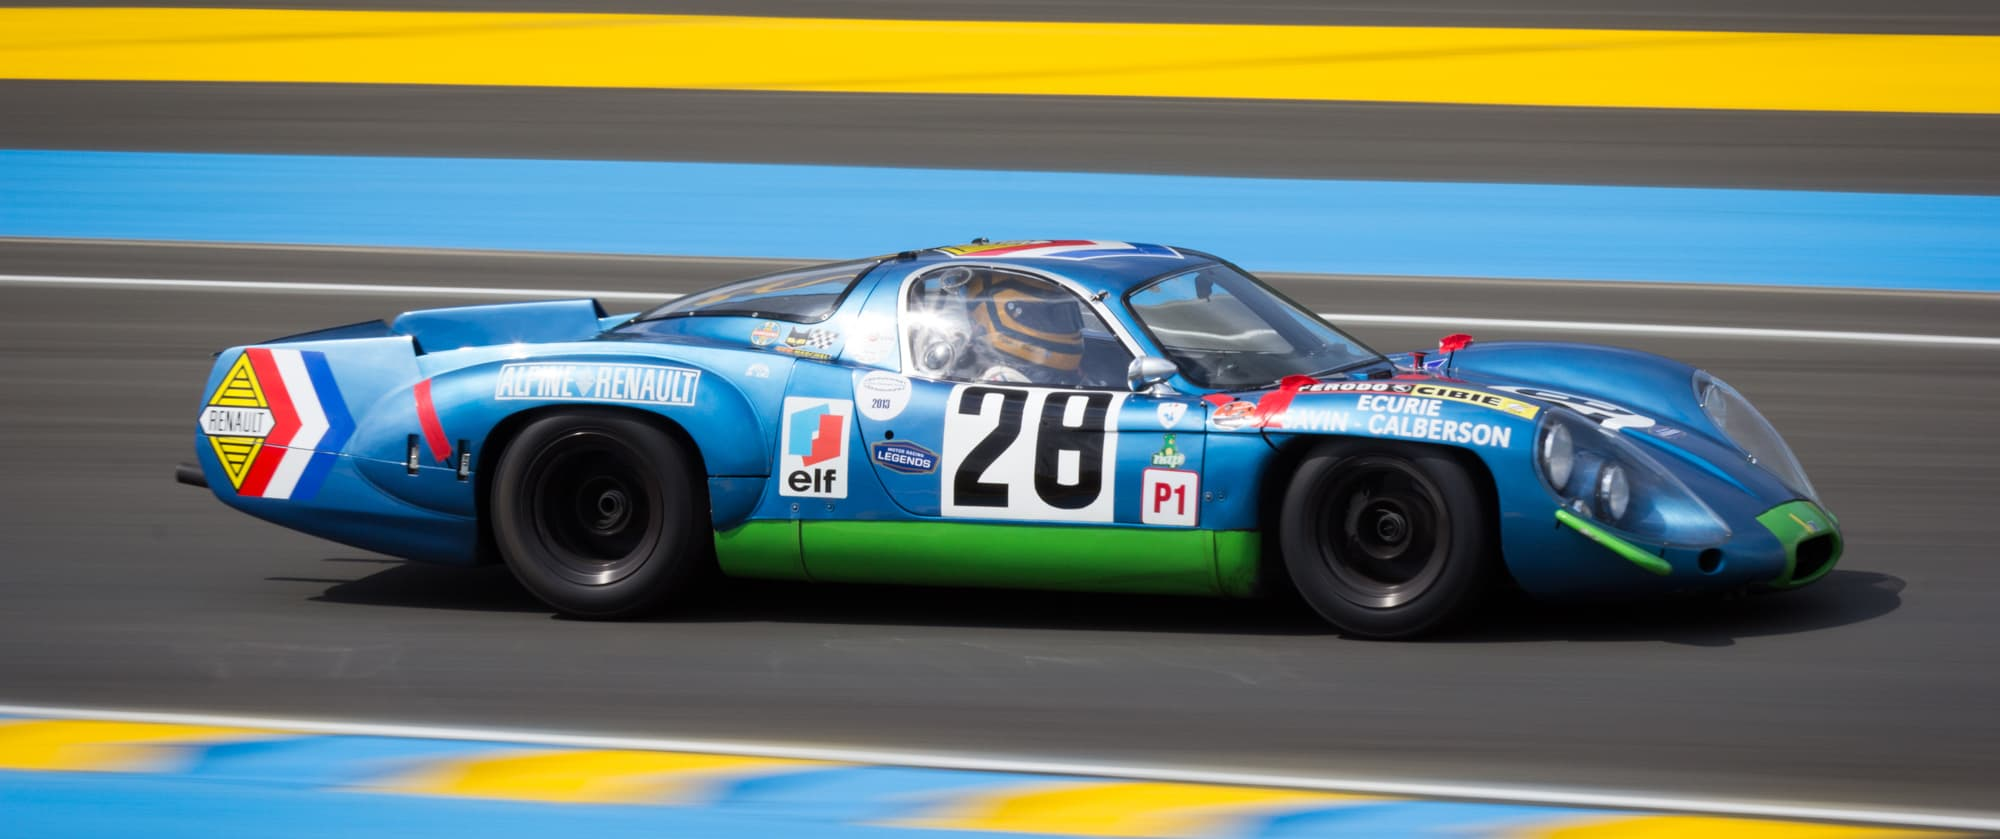 L'Alpine A220 : La Belle Illusion